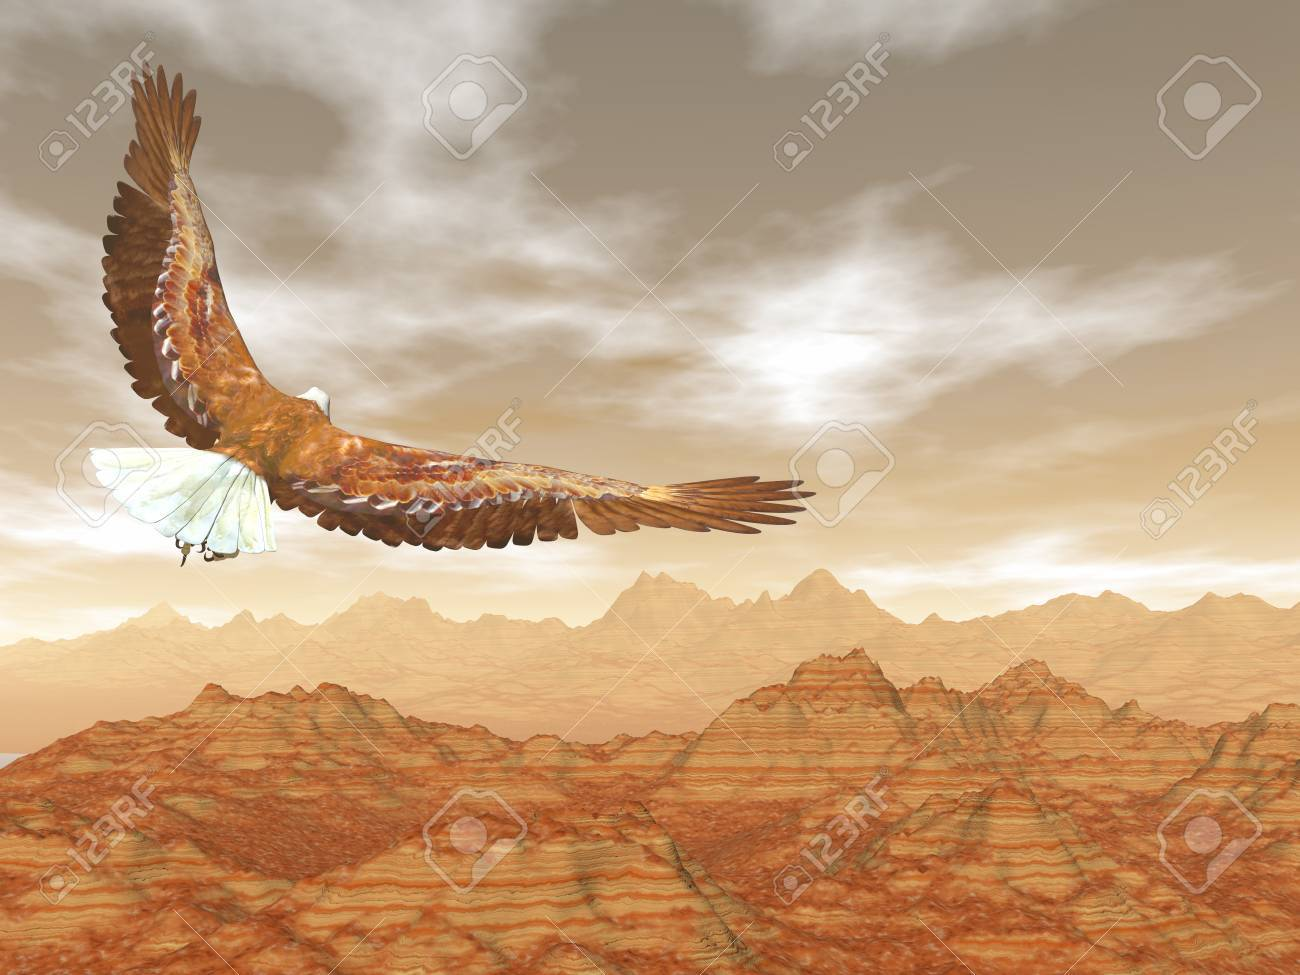 Bald eagle flying upon rocky mountains - 3D render